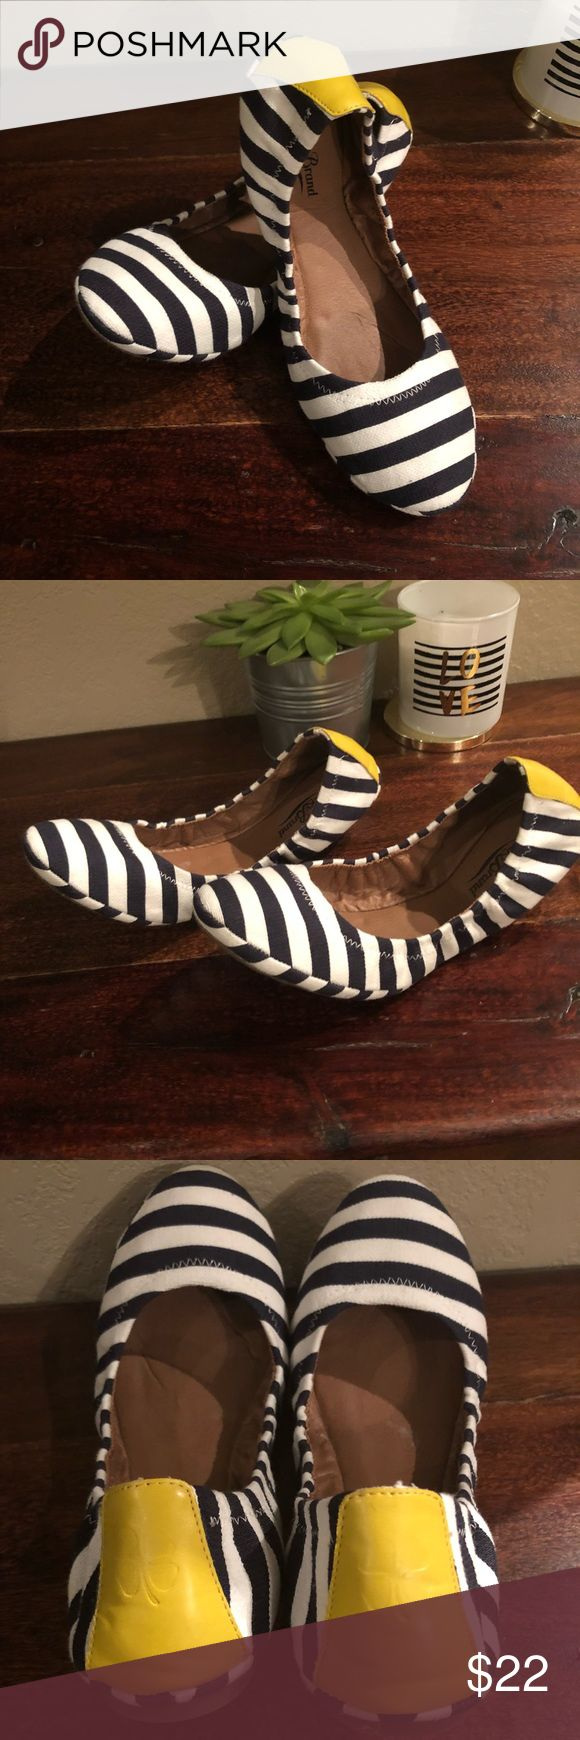 Lucky Brand Flats NWOT absolutely adorable striped Lucky Brand flats, never worn. Lucky Brand Shoes Flats & Loafers